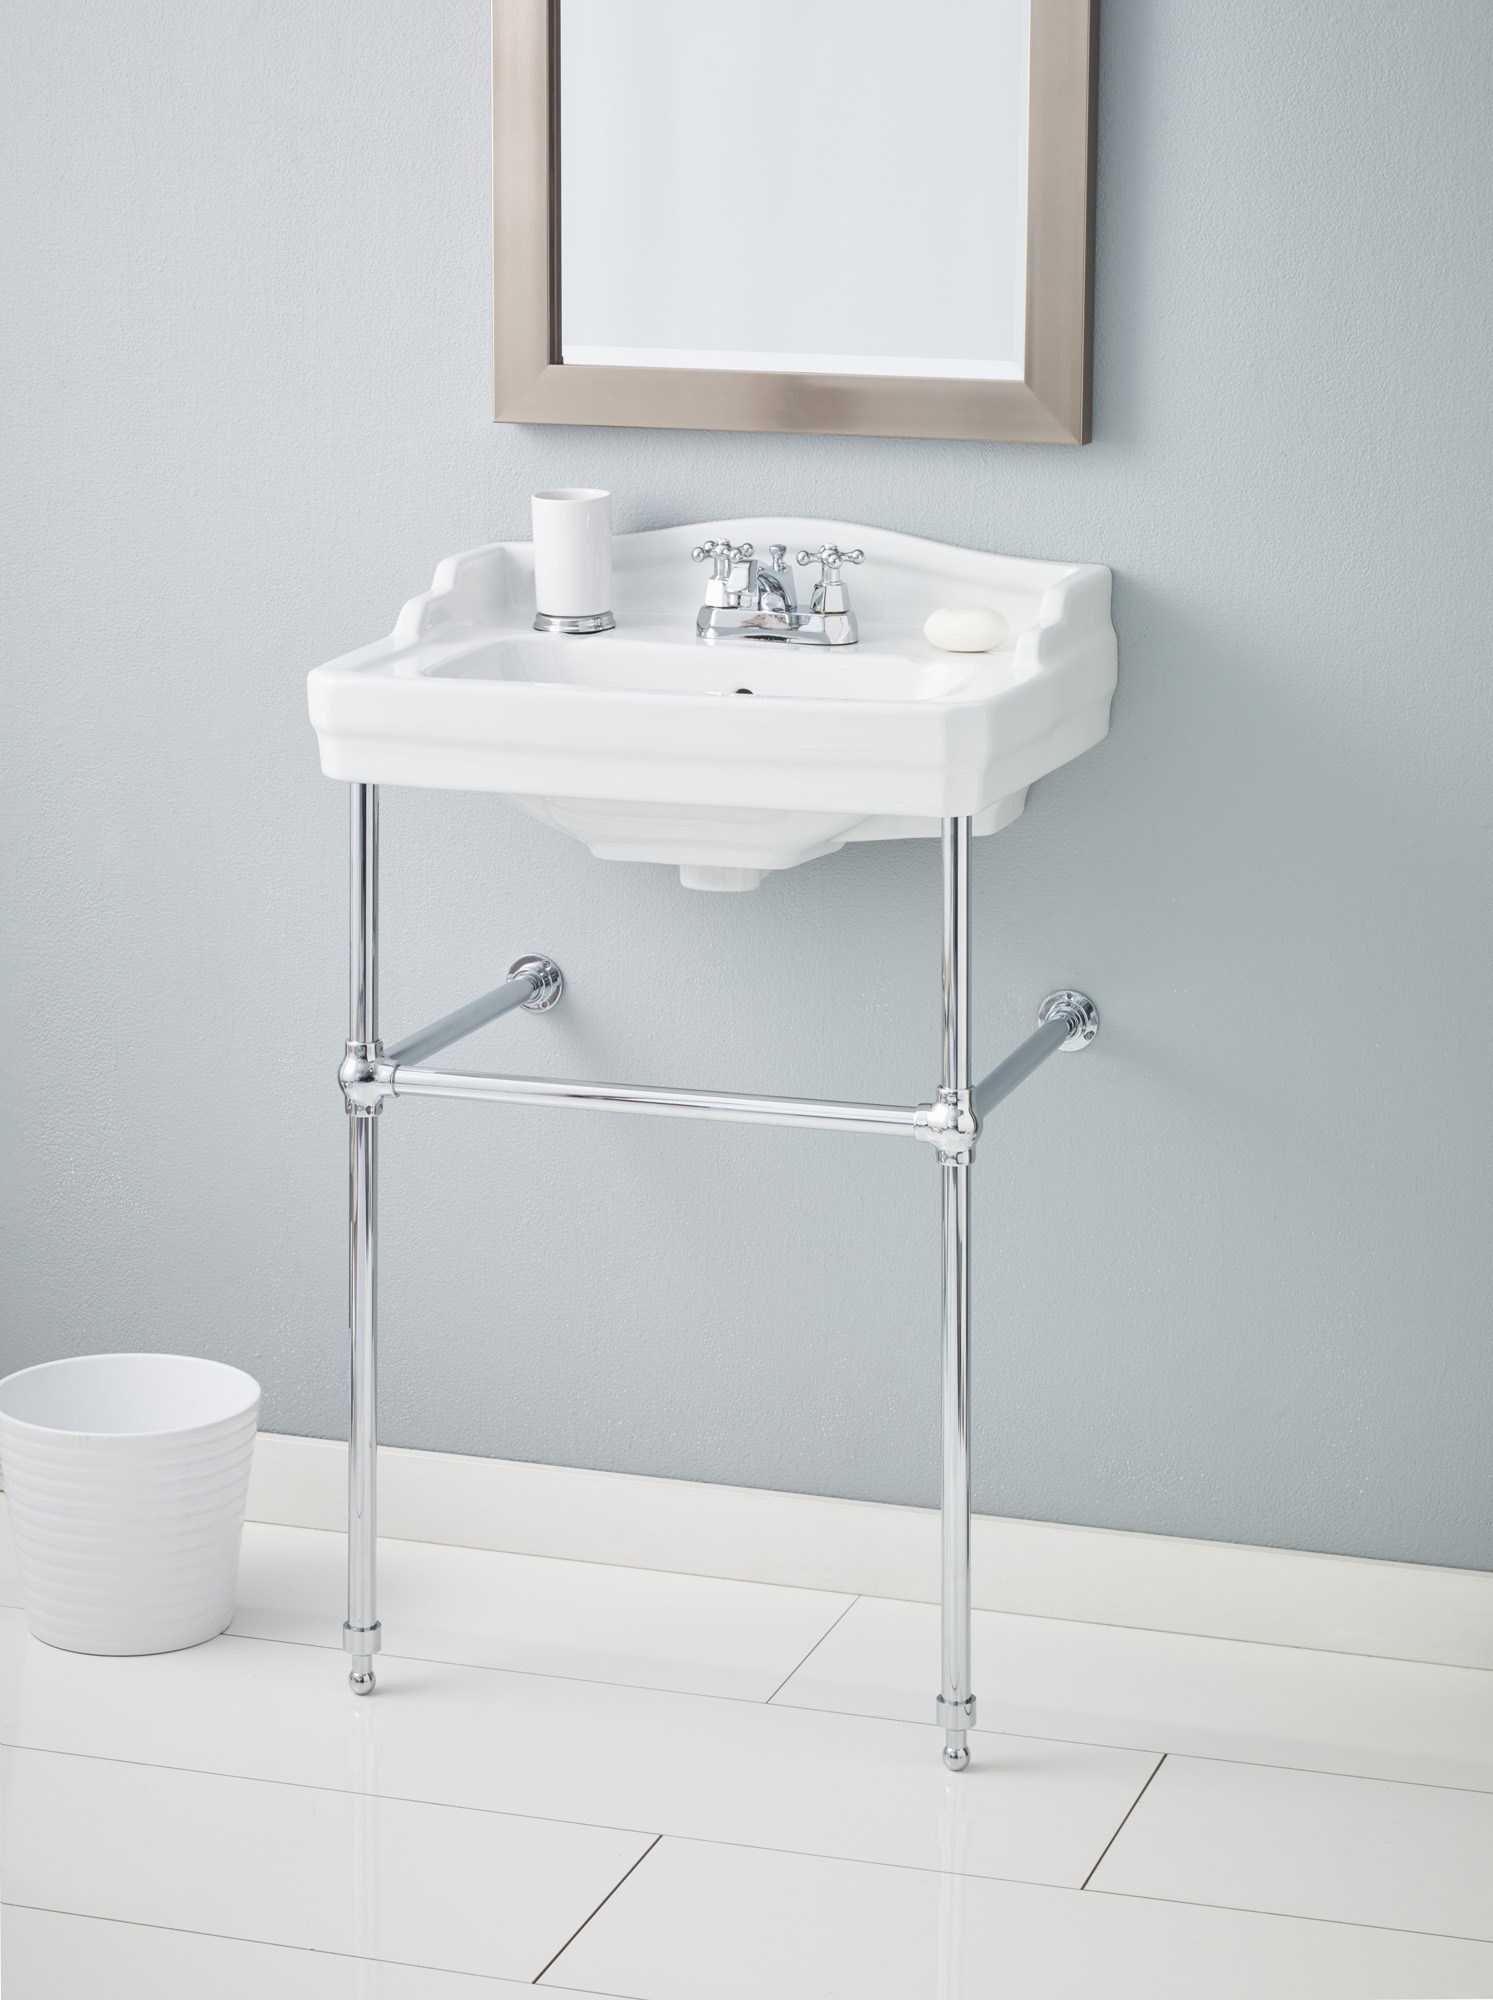 Cheviot 553-WH-4-575-CH Essex 4 Inch Drilling Lavatory Sink in White with Chrome Console